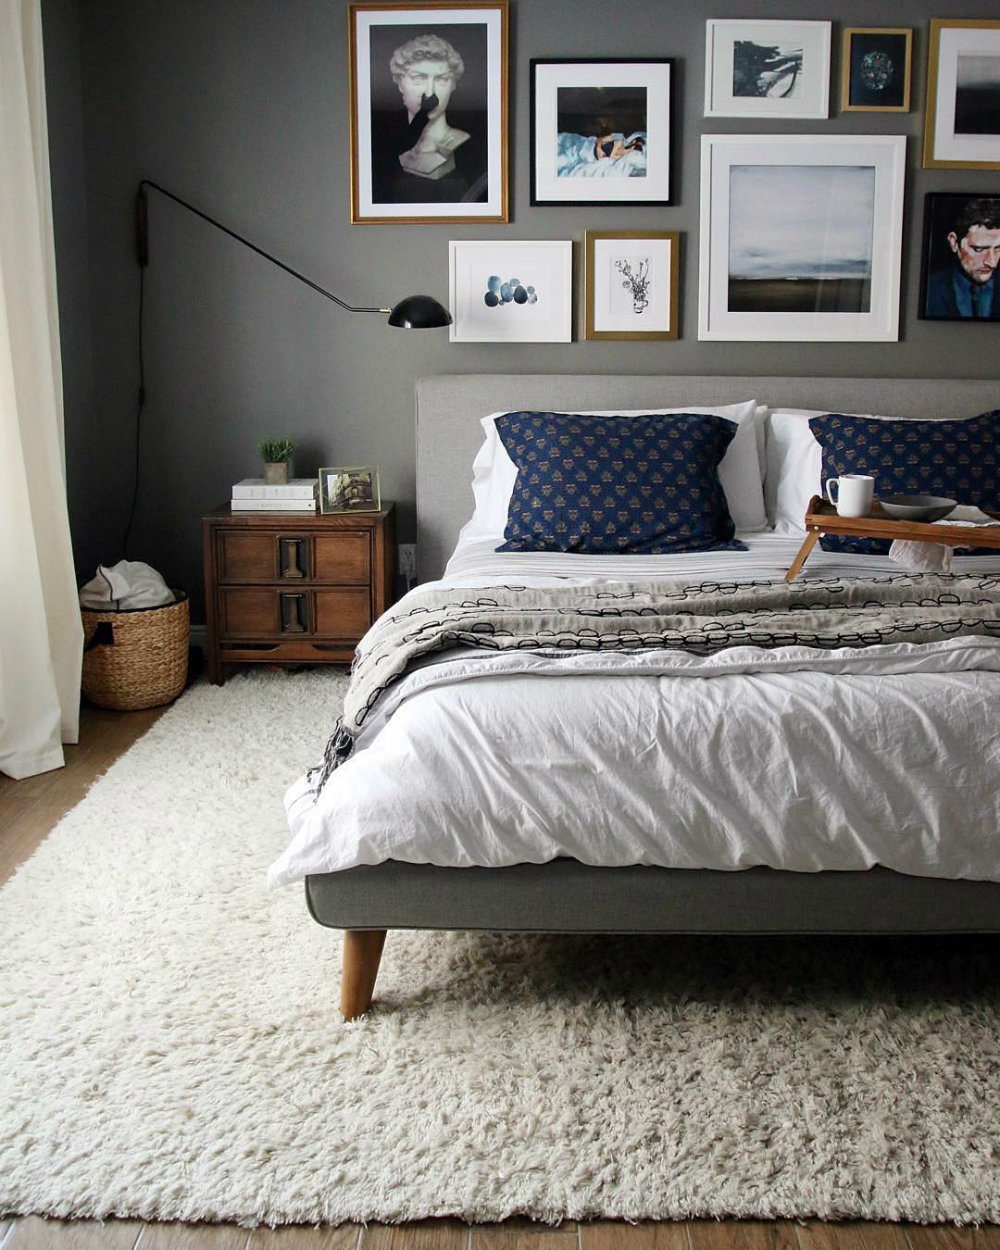 Discover the Bedroom Colors Top Interior Designers Love 04 Bedroom Colors Discover the Bedroom Colors Top Interior Designers Love Discover the Bedroom Colors Top Interior Designers Love 04